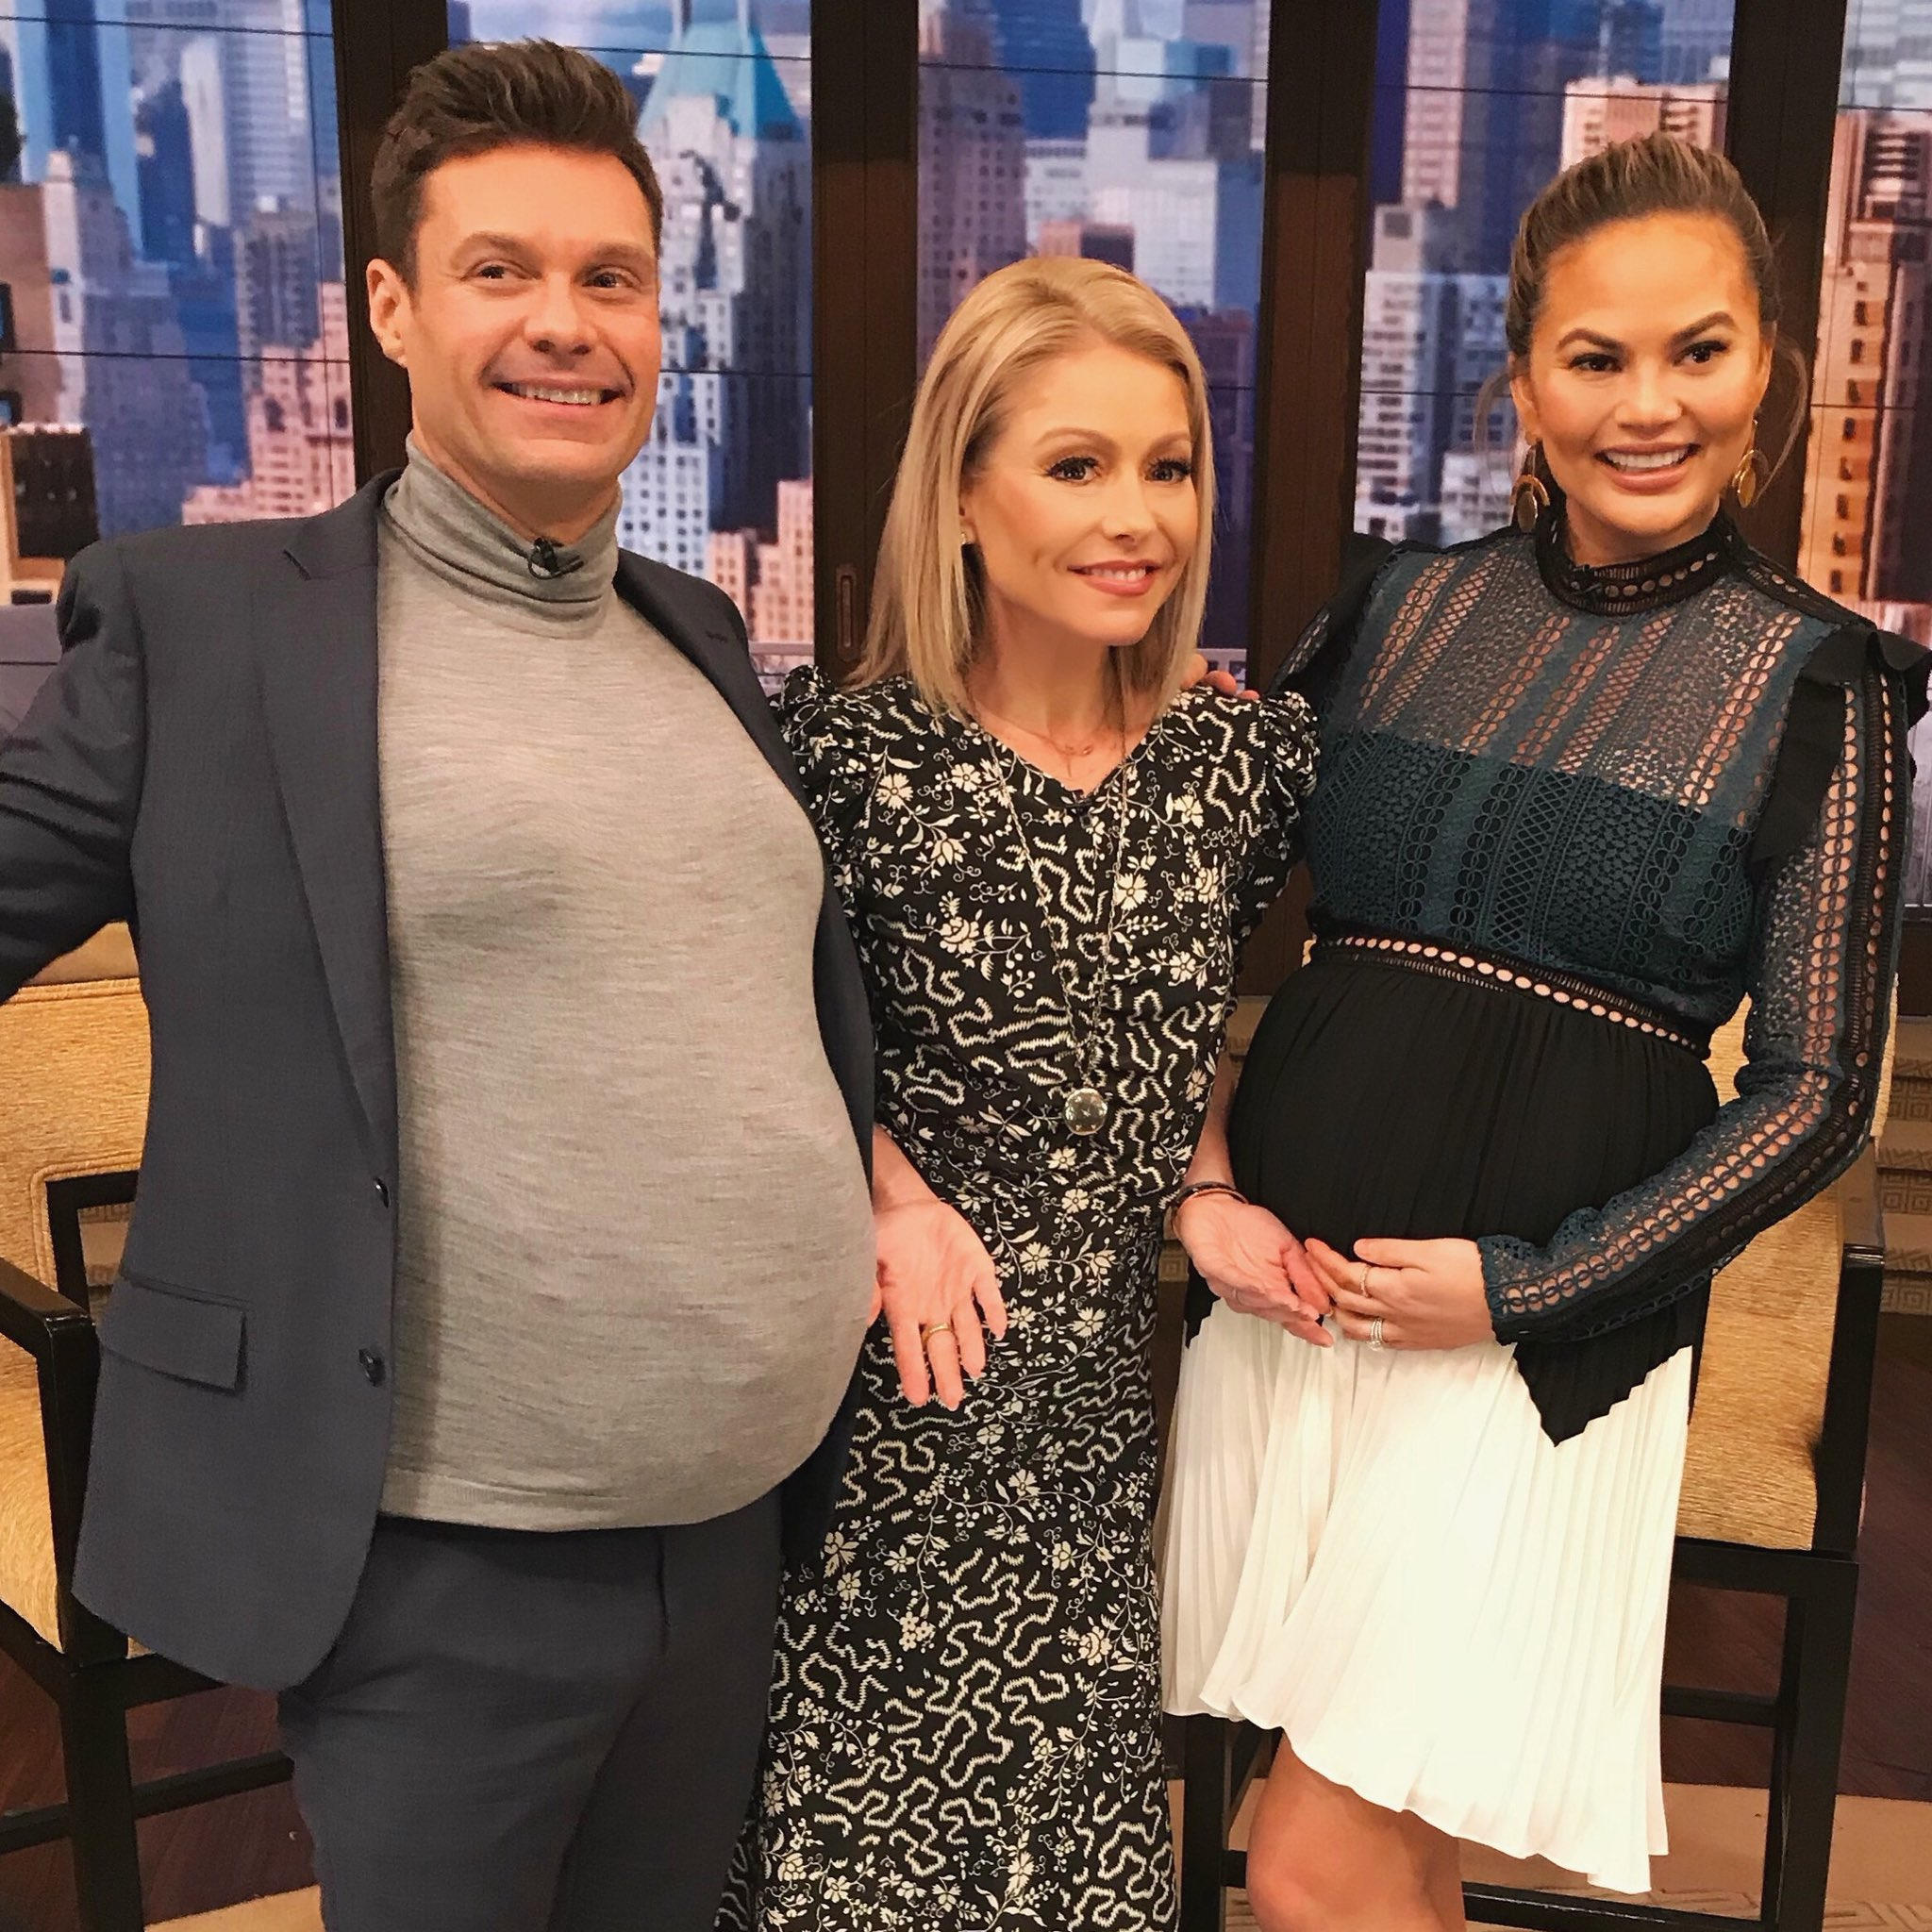 Swapping pregnancy stories with @chrissyteigen #kellyandryan https://t.co/BFXkM9RhDM